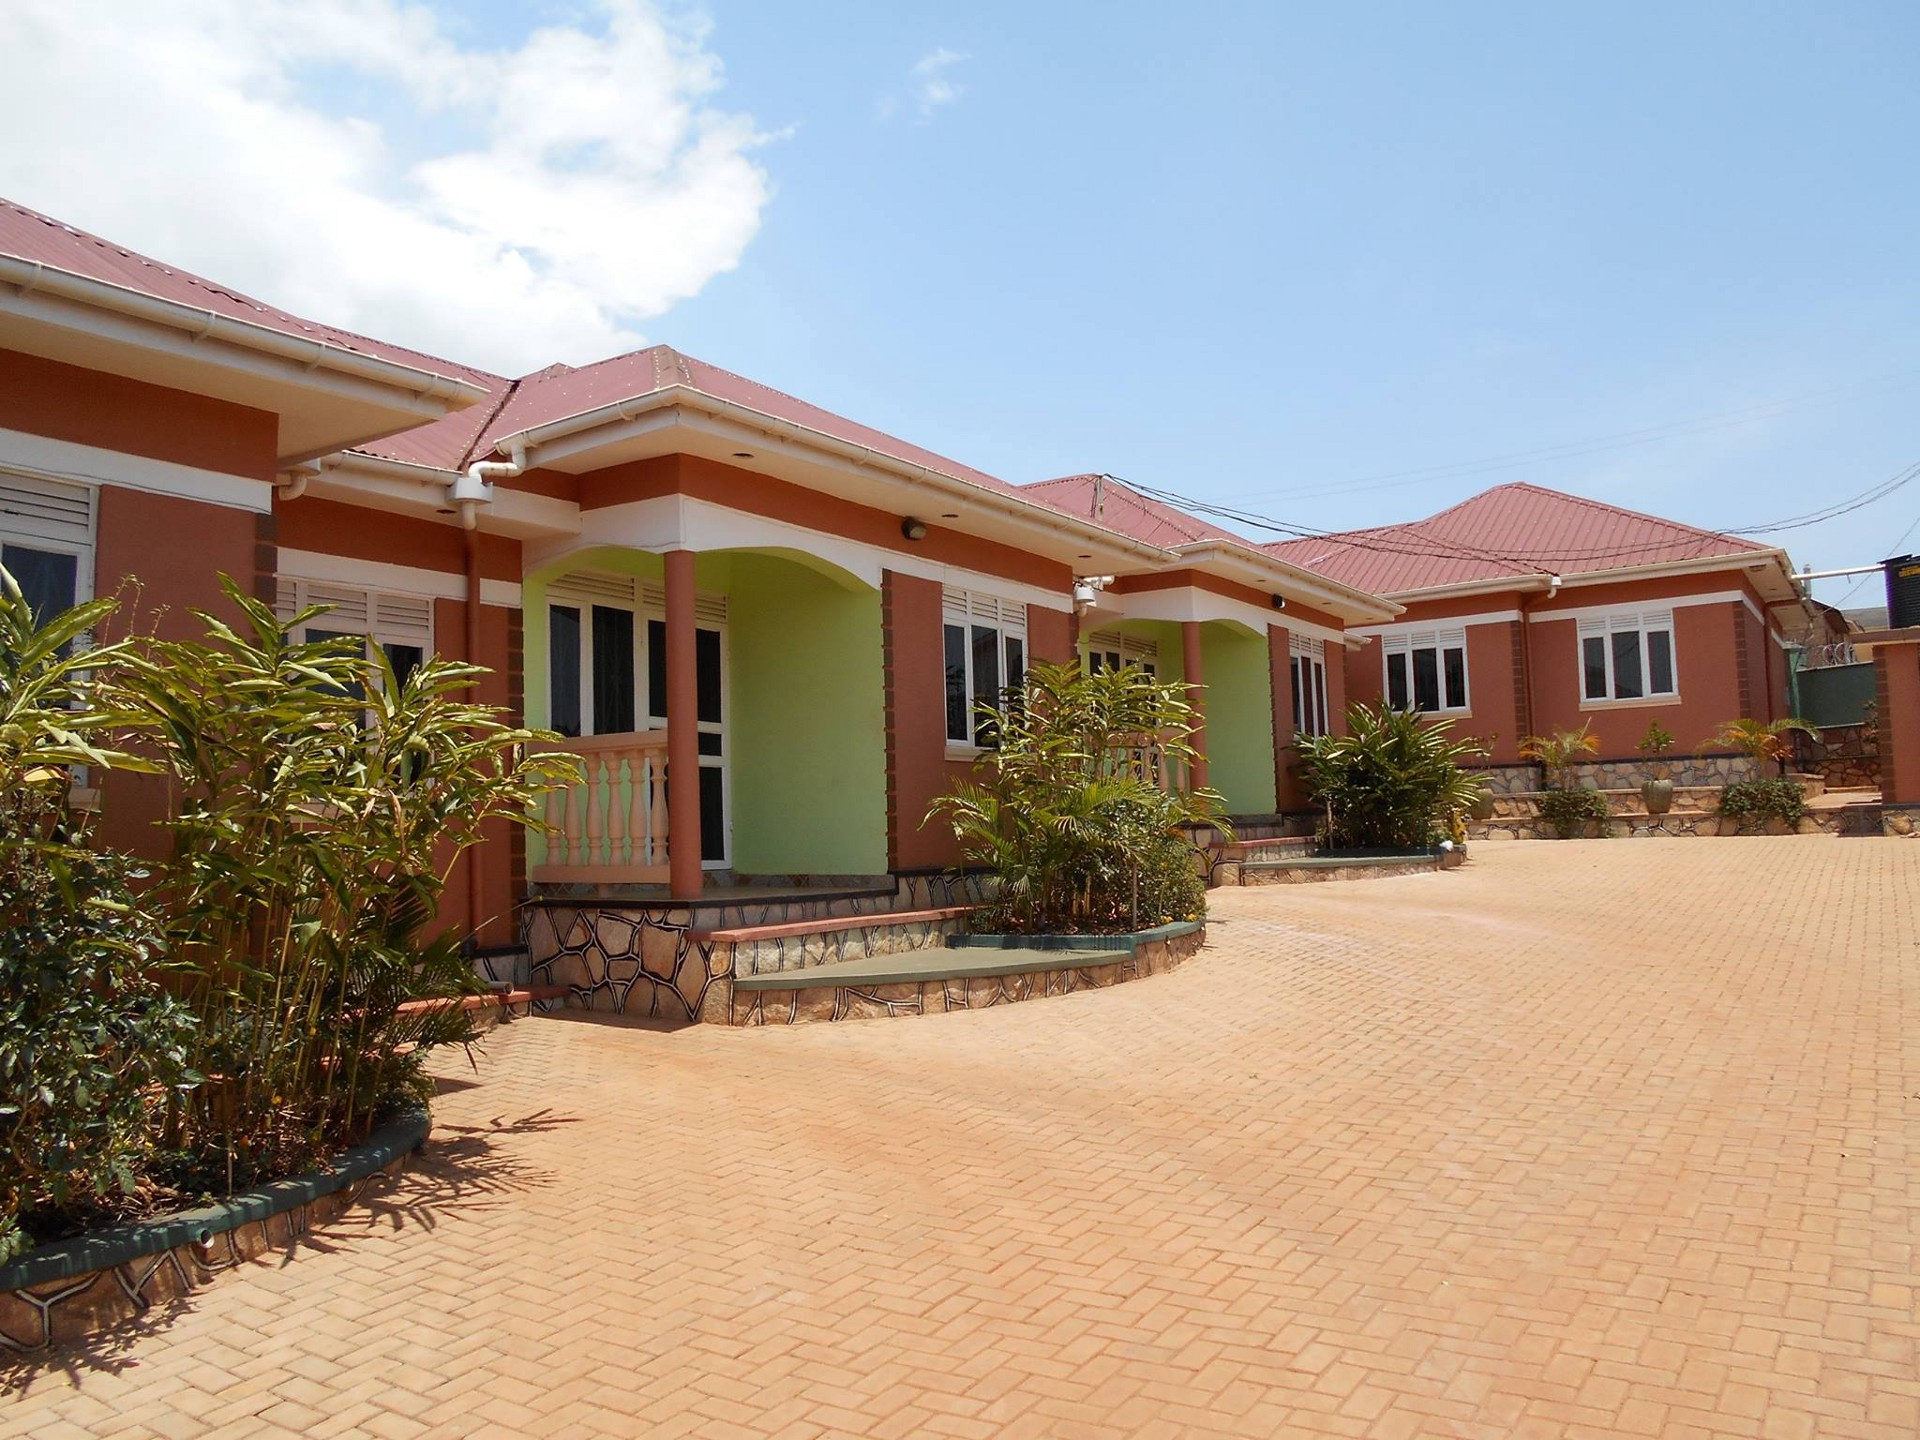 Semi-detached houses in one of Kampala's surburs. Attempts to relocate or find a good house has been met with ravaging conmen posing as brokers (FILE PHOTO)